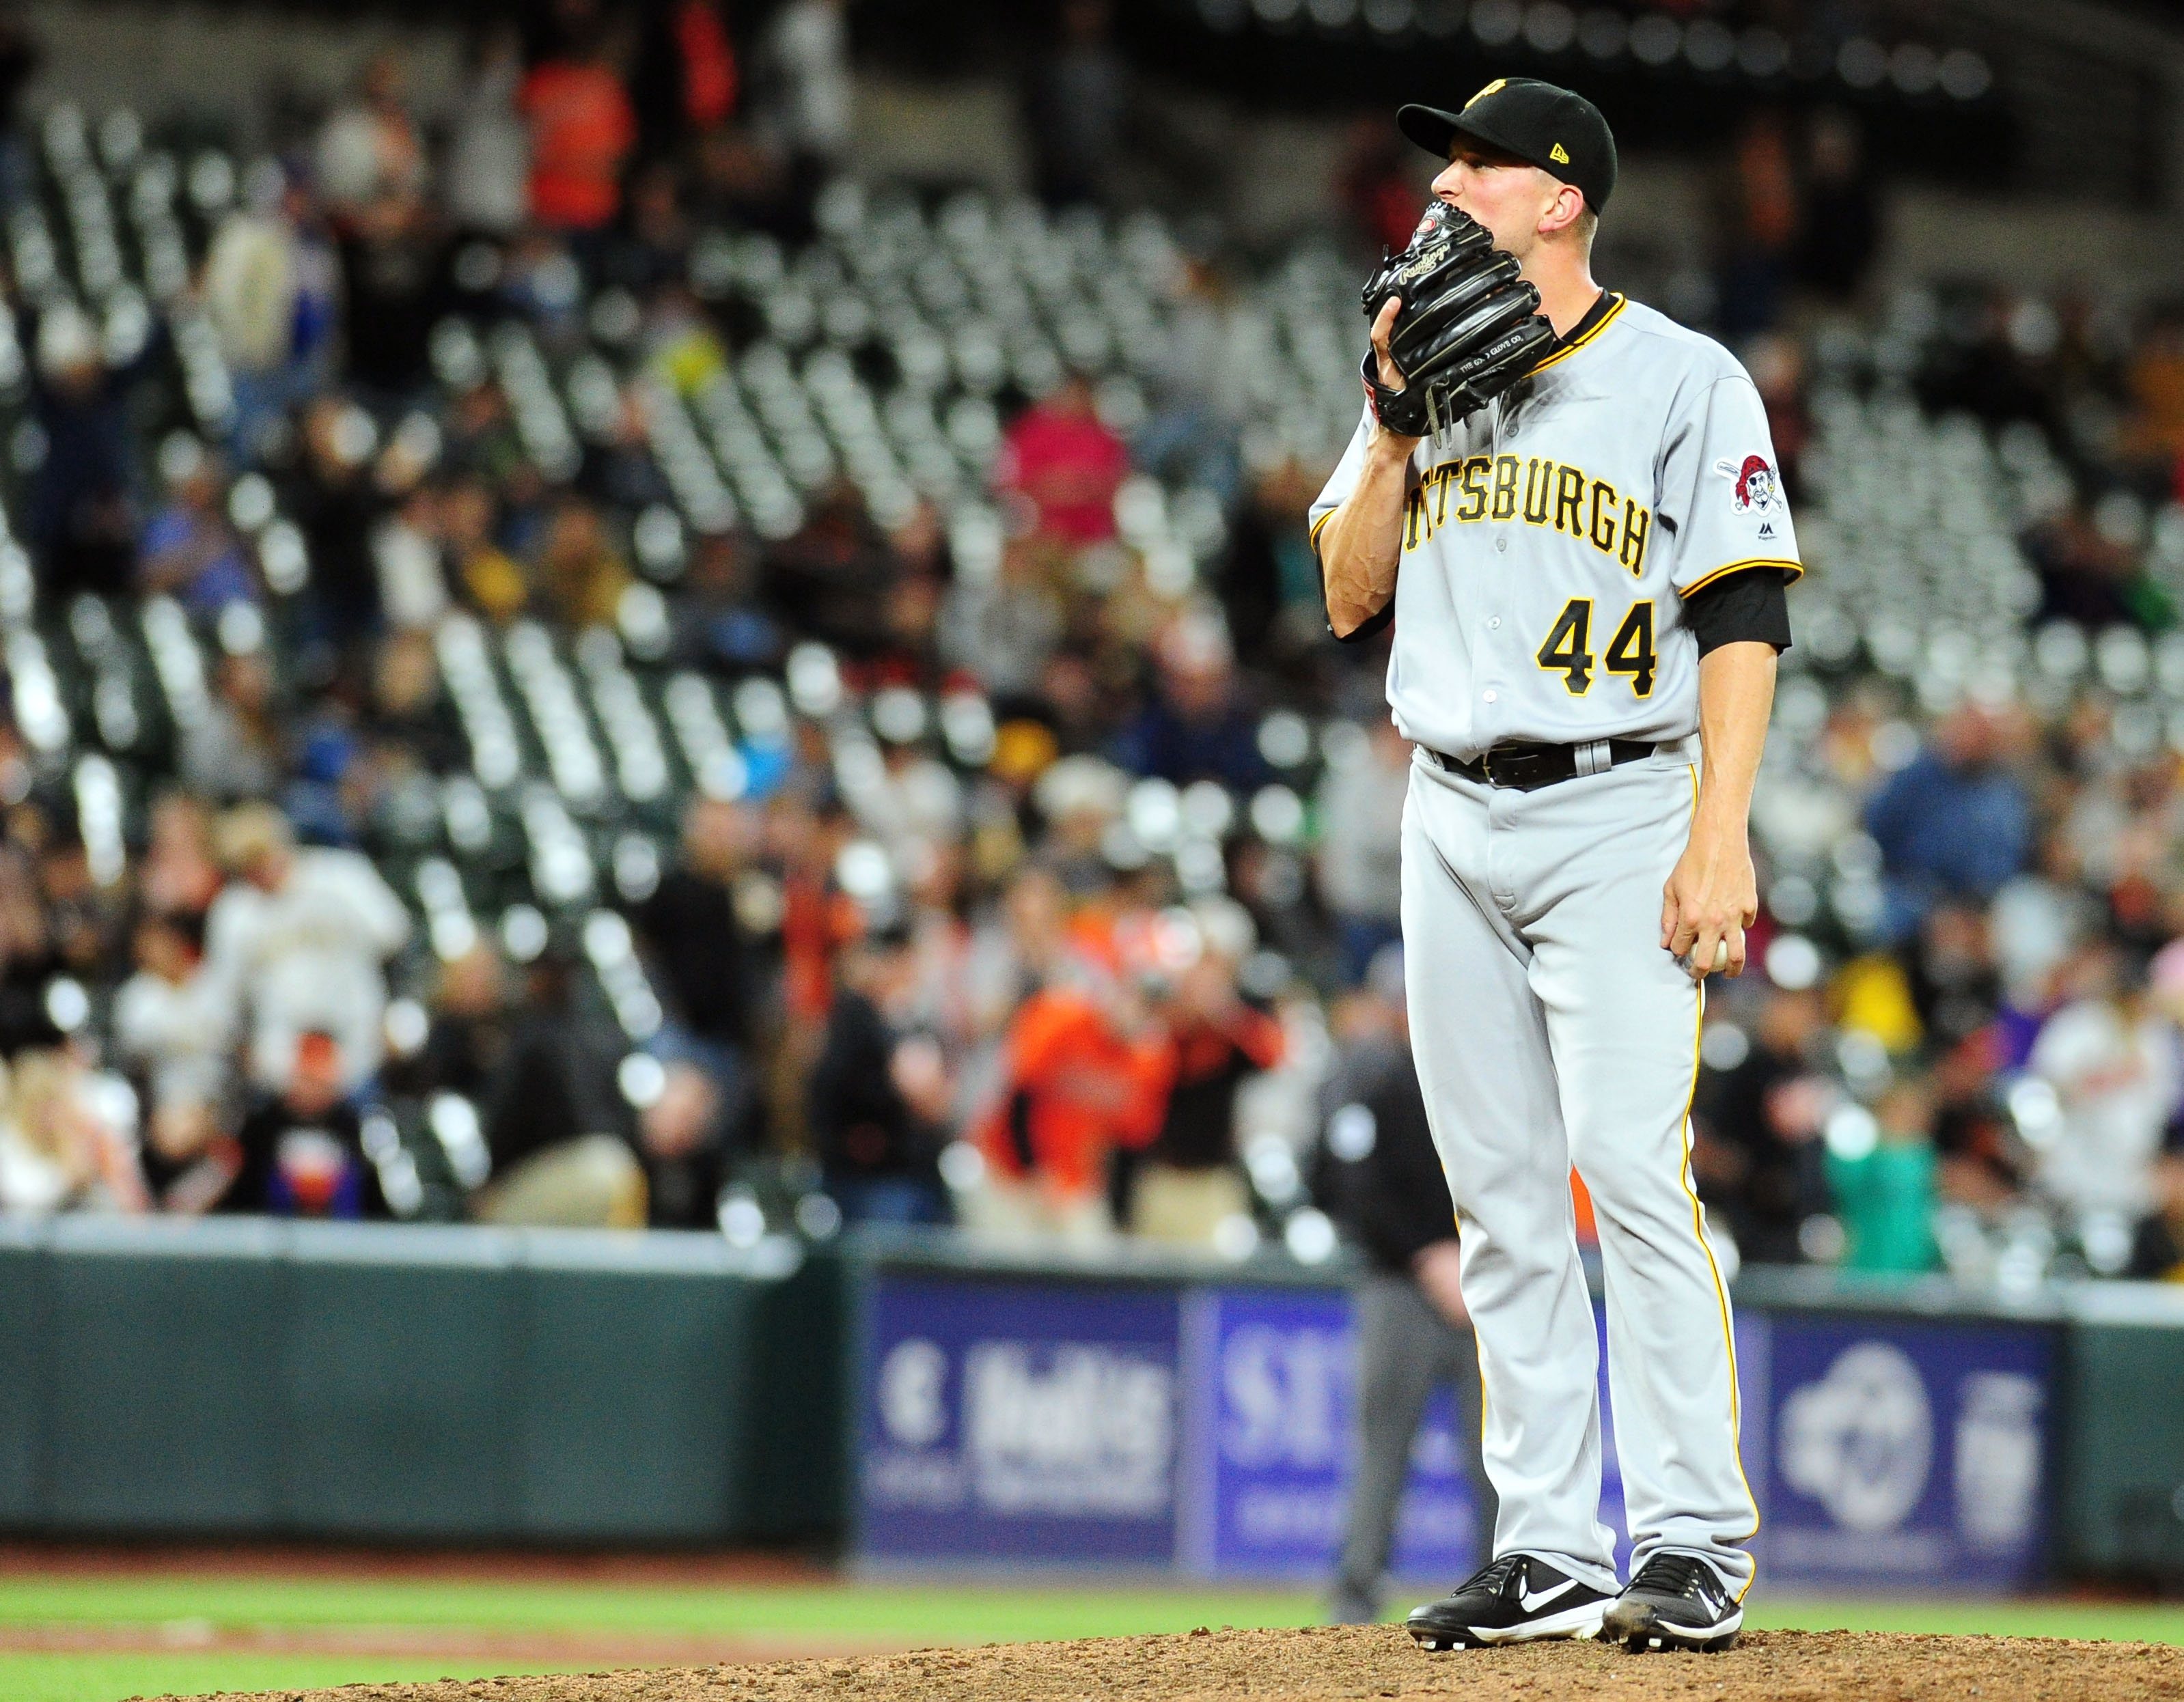 10096575-mlb-pittsburgh-pirates-at-baltimore-orioles